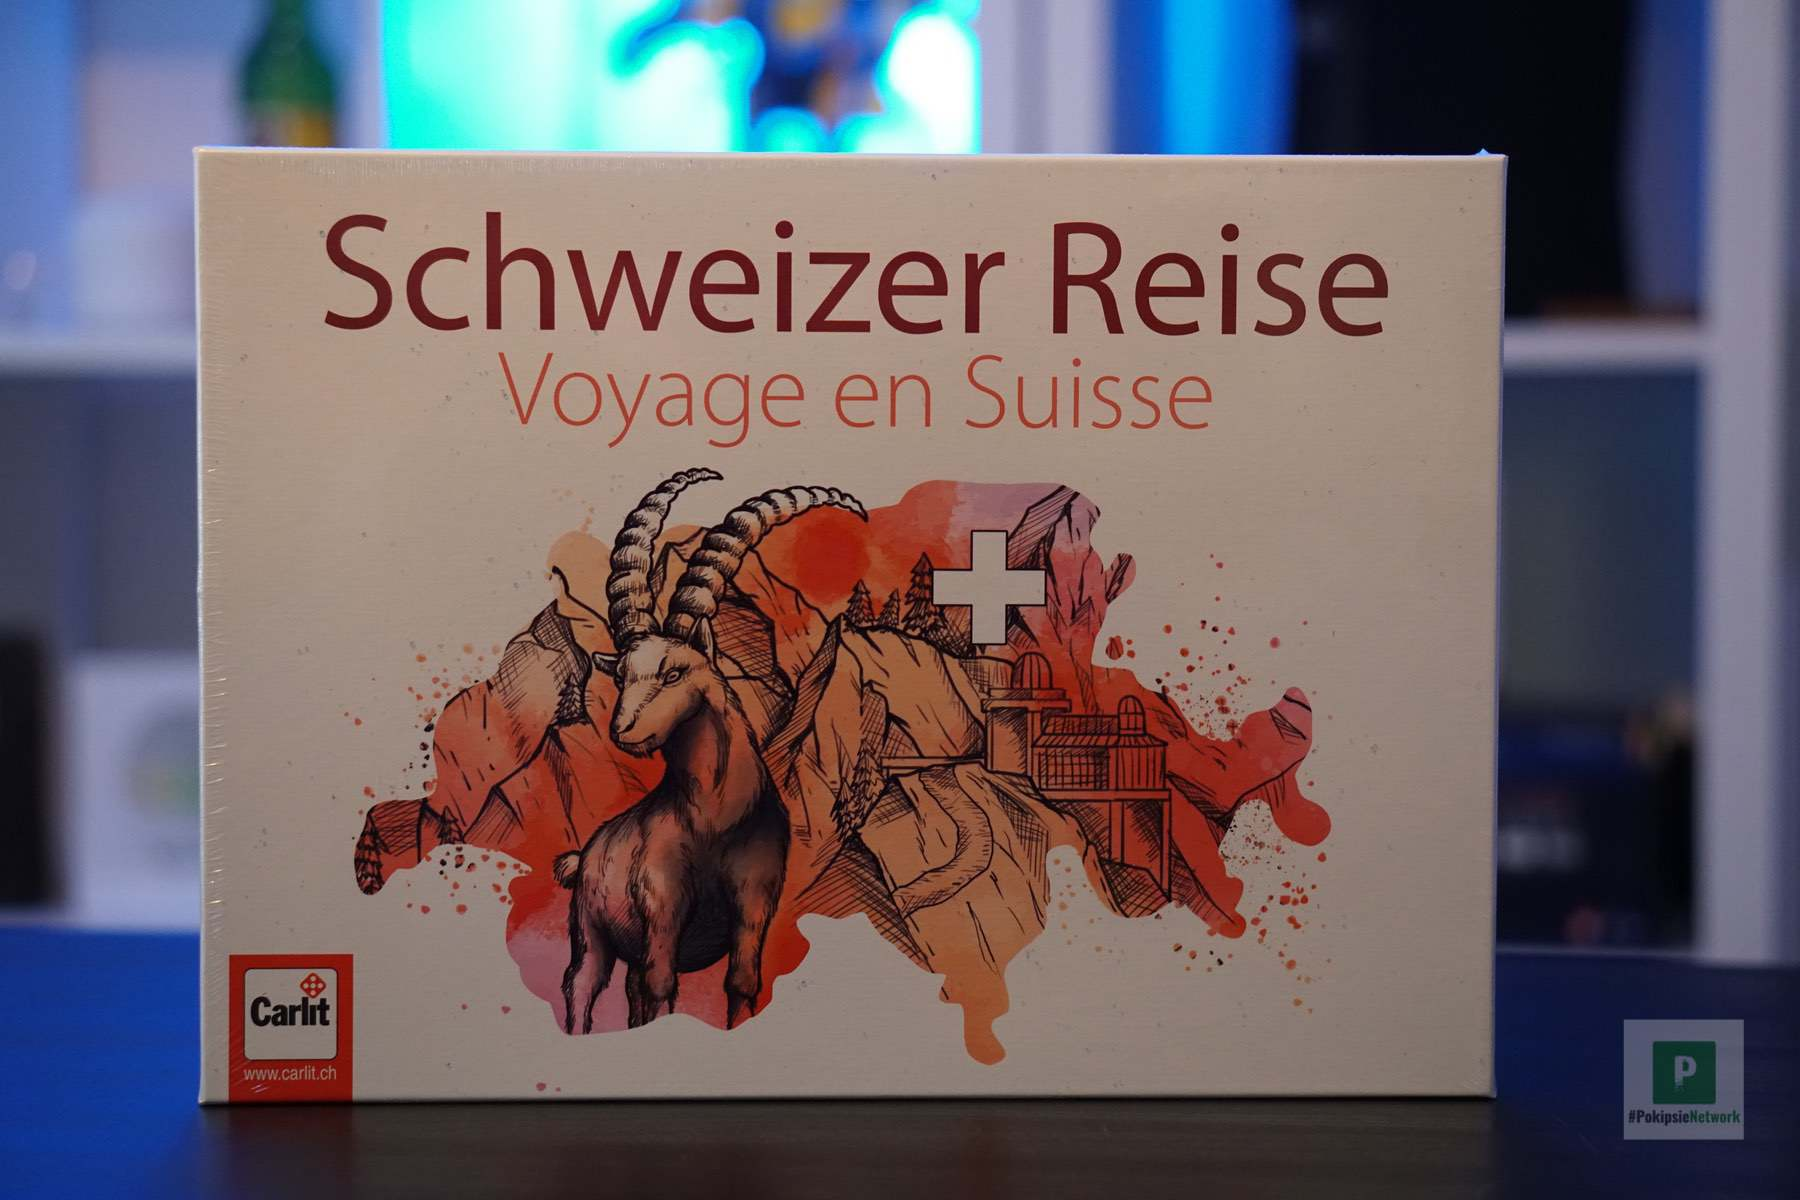 Schweizer Reise - Tour of Switzerland